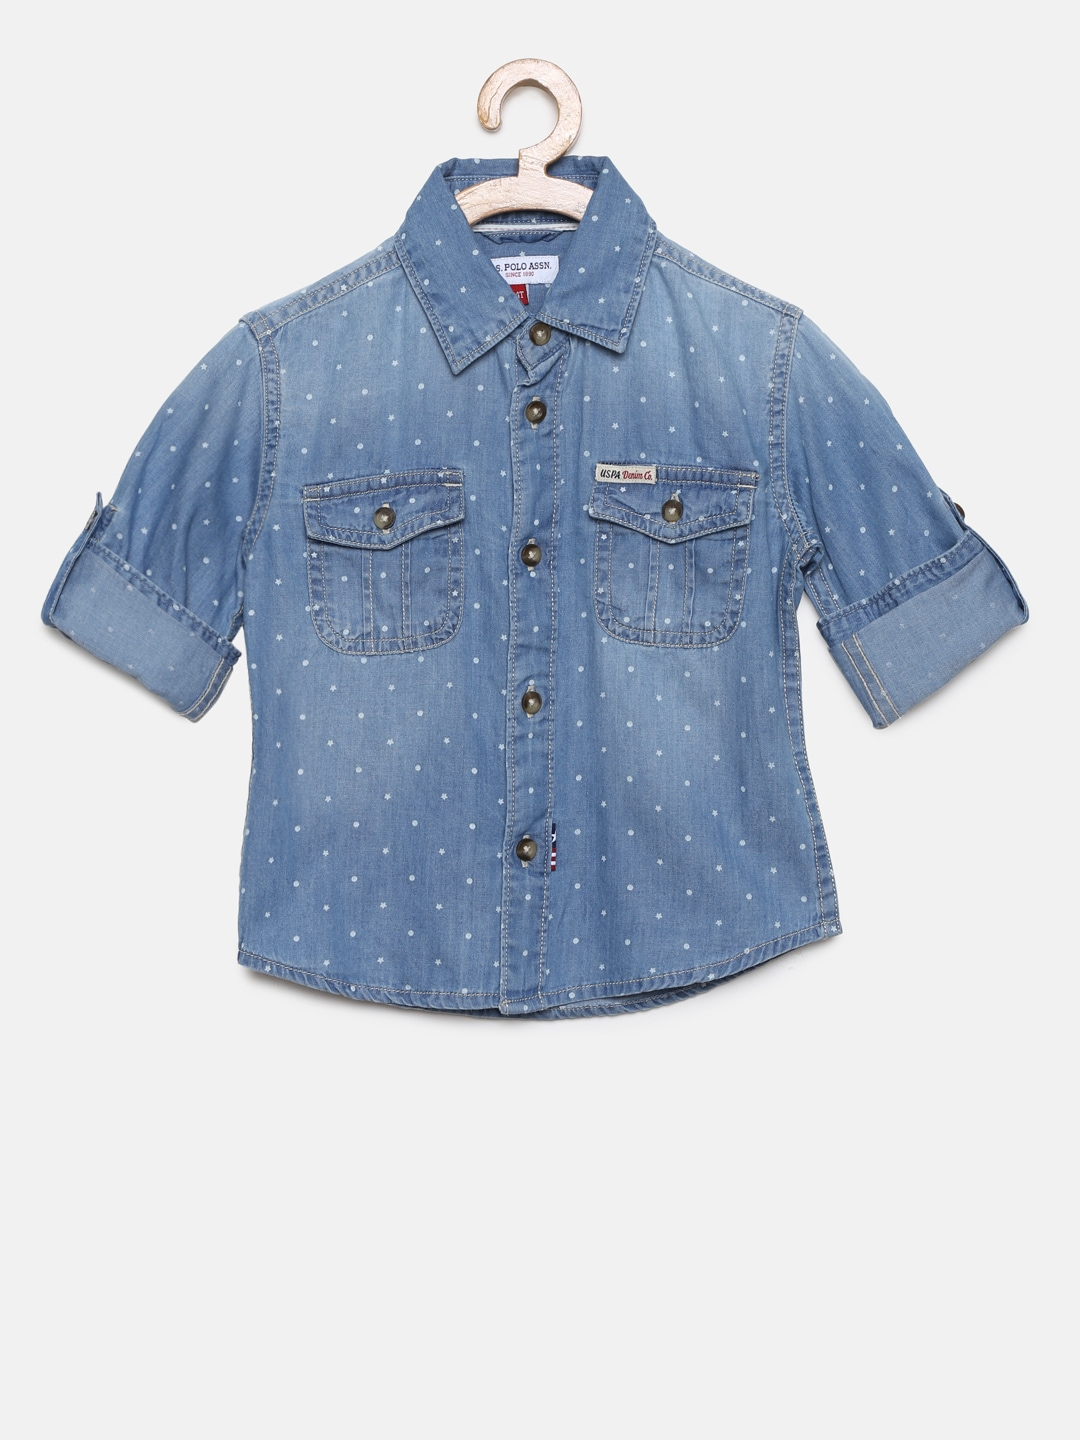 2a5db714099 Kids Shirts- Buy Shirts for Kids online in India